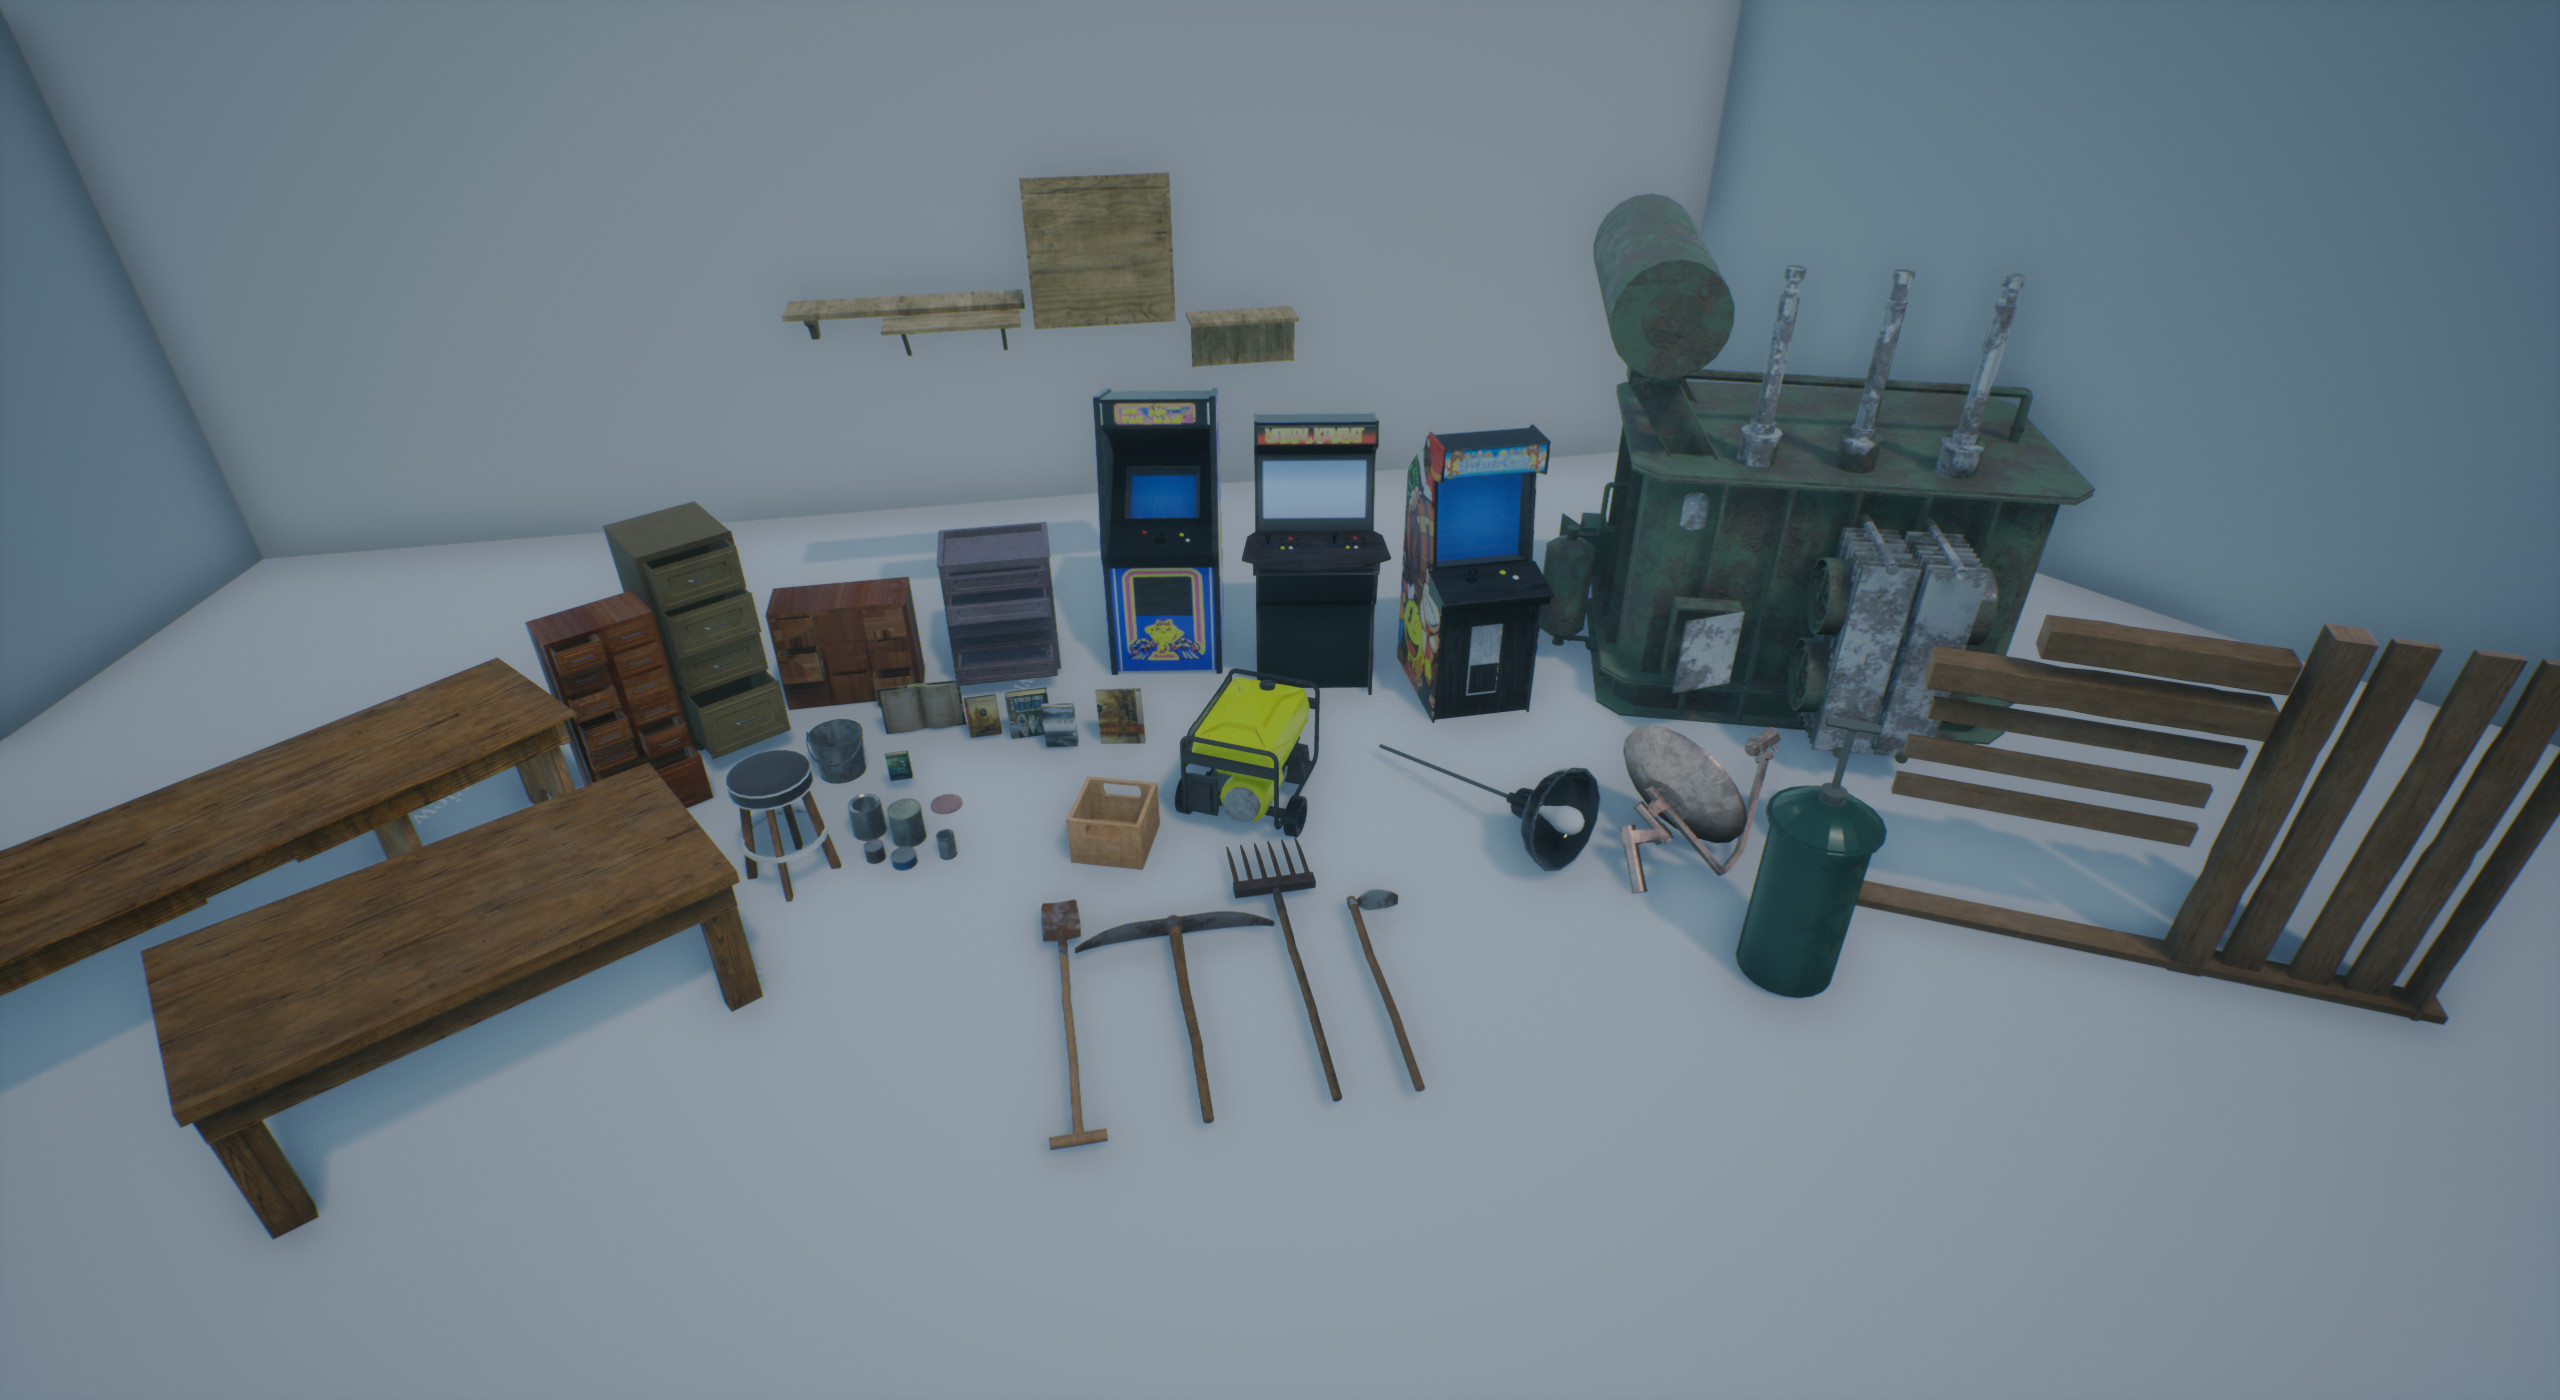 Modular Pieces and Props